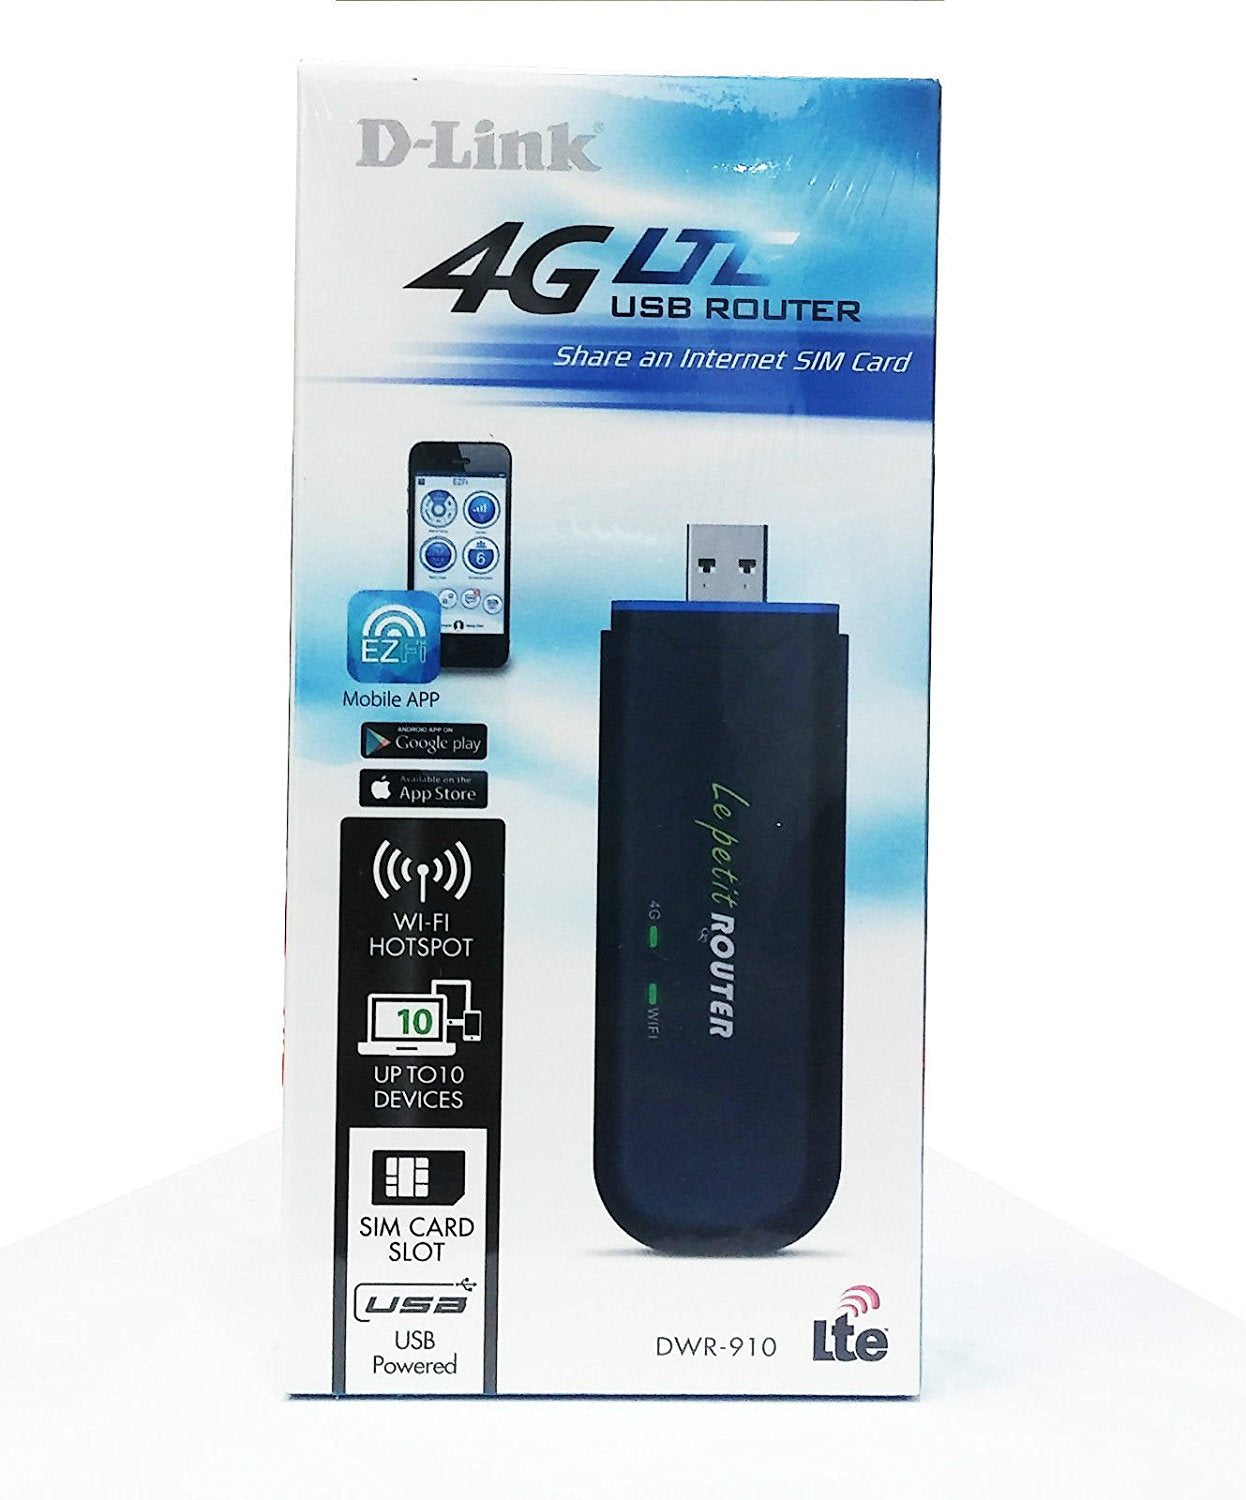 D-Link 4G LTE WIRELESS USB ROUTER DWR-910